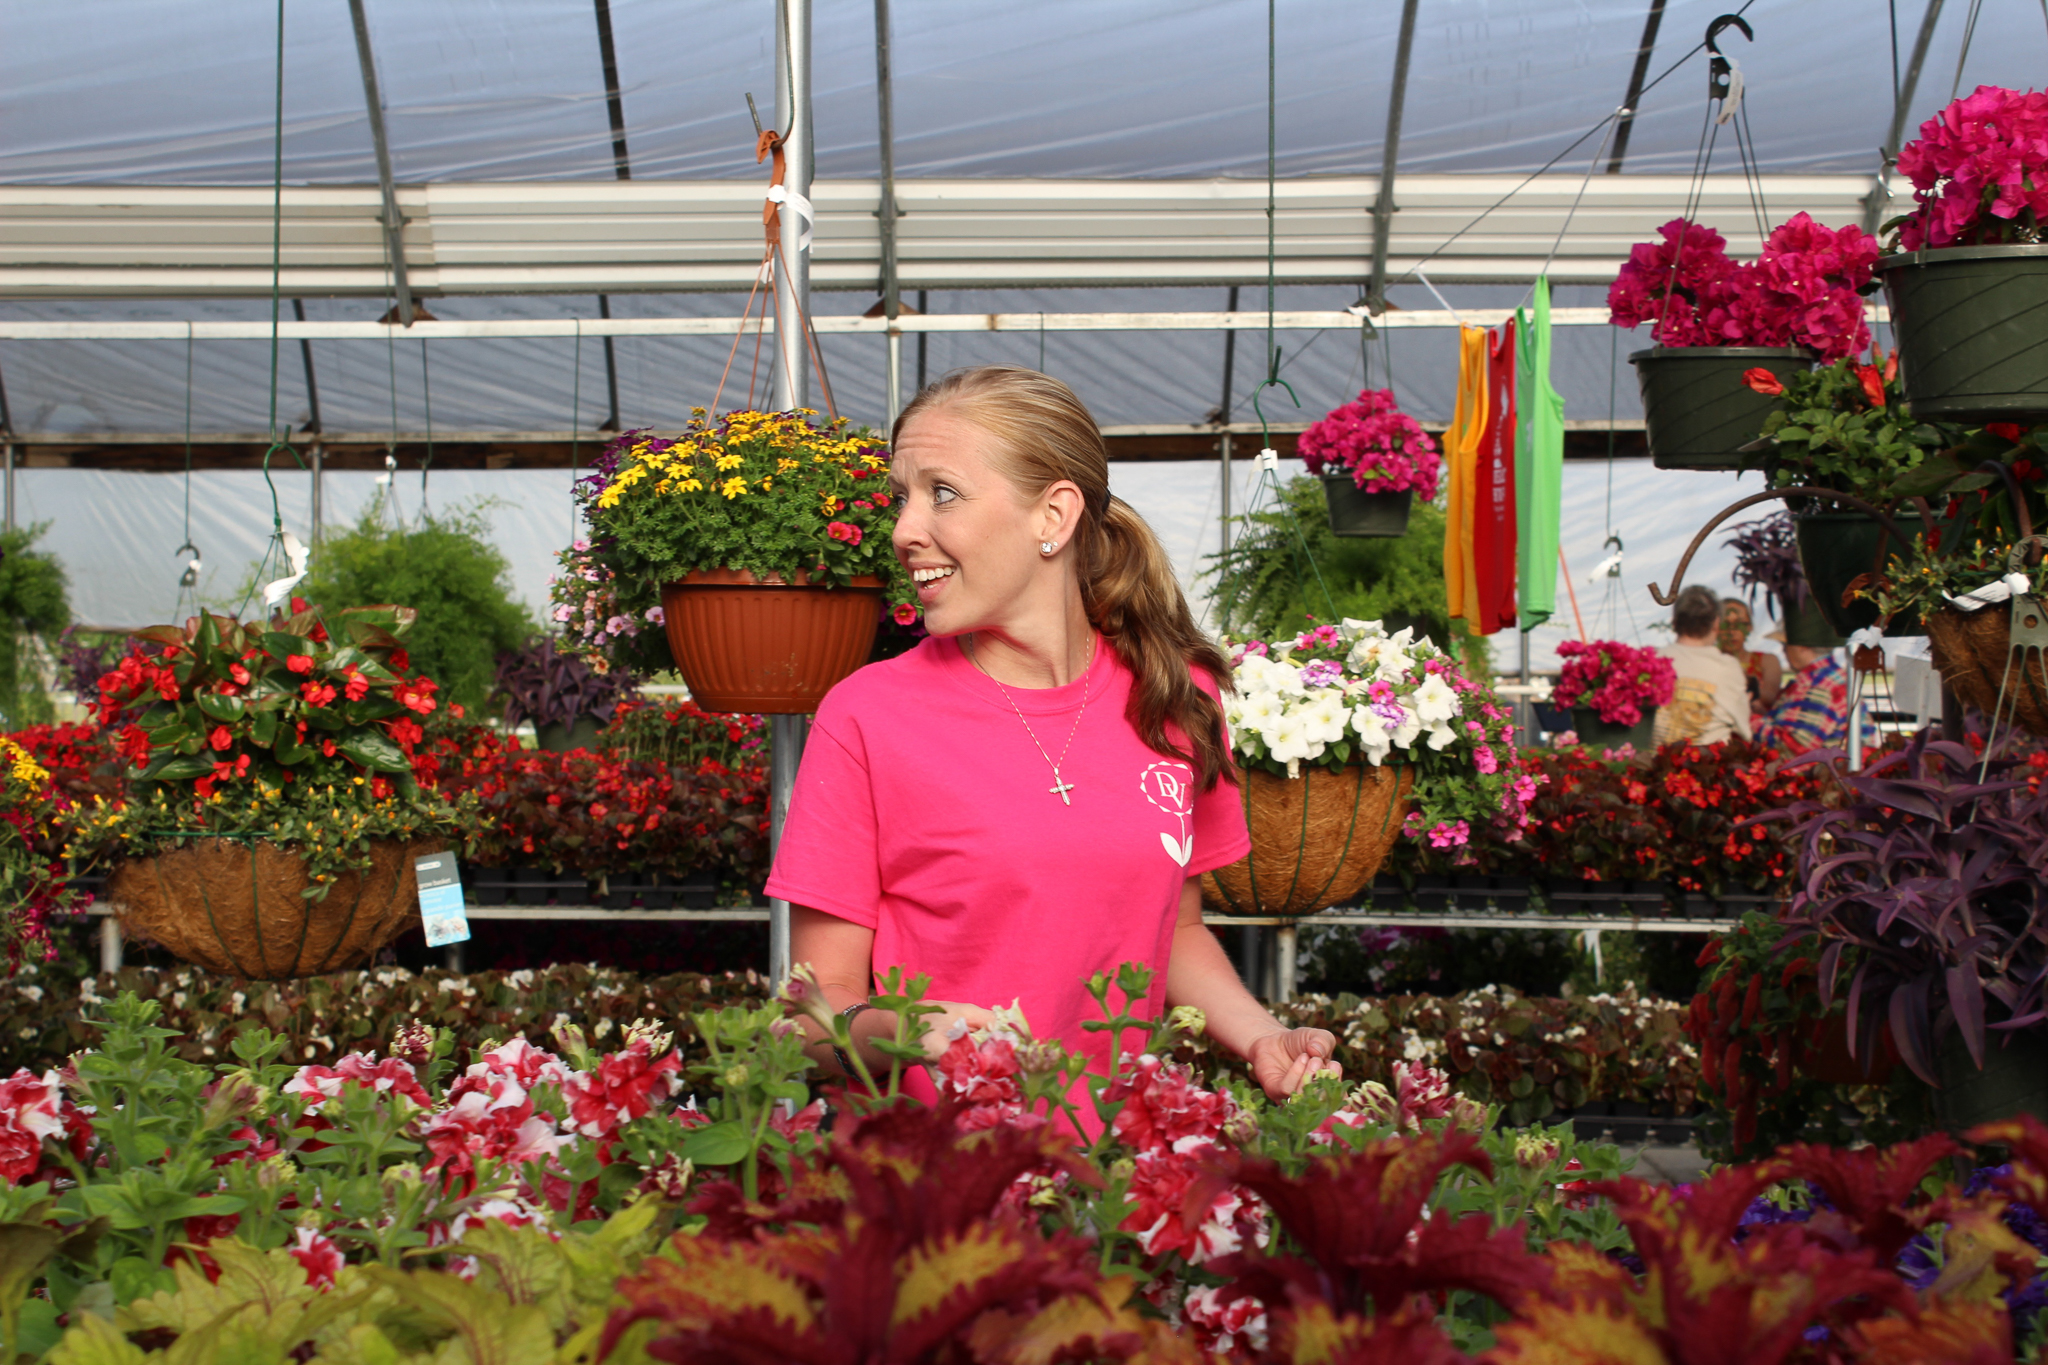 Becky McMillan (Garden Center + Family member )